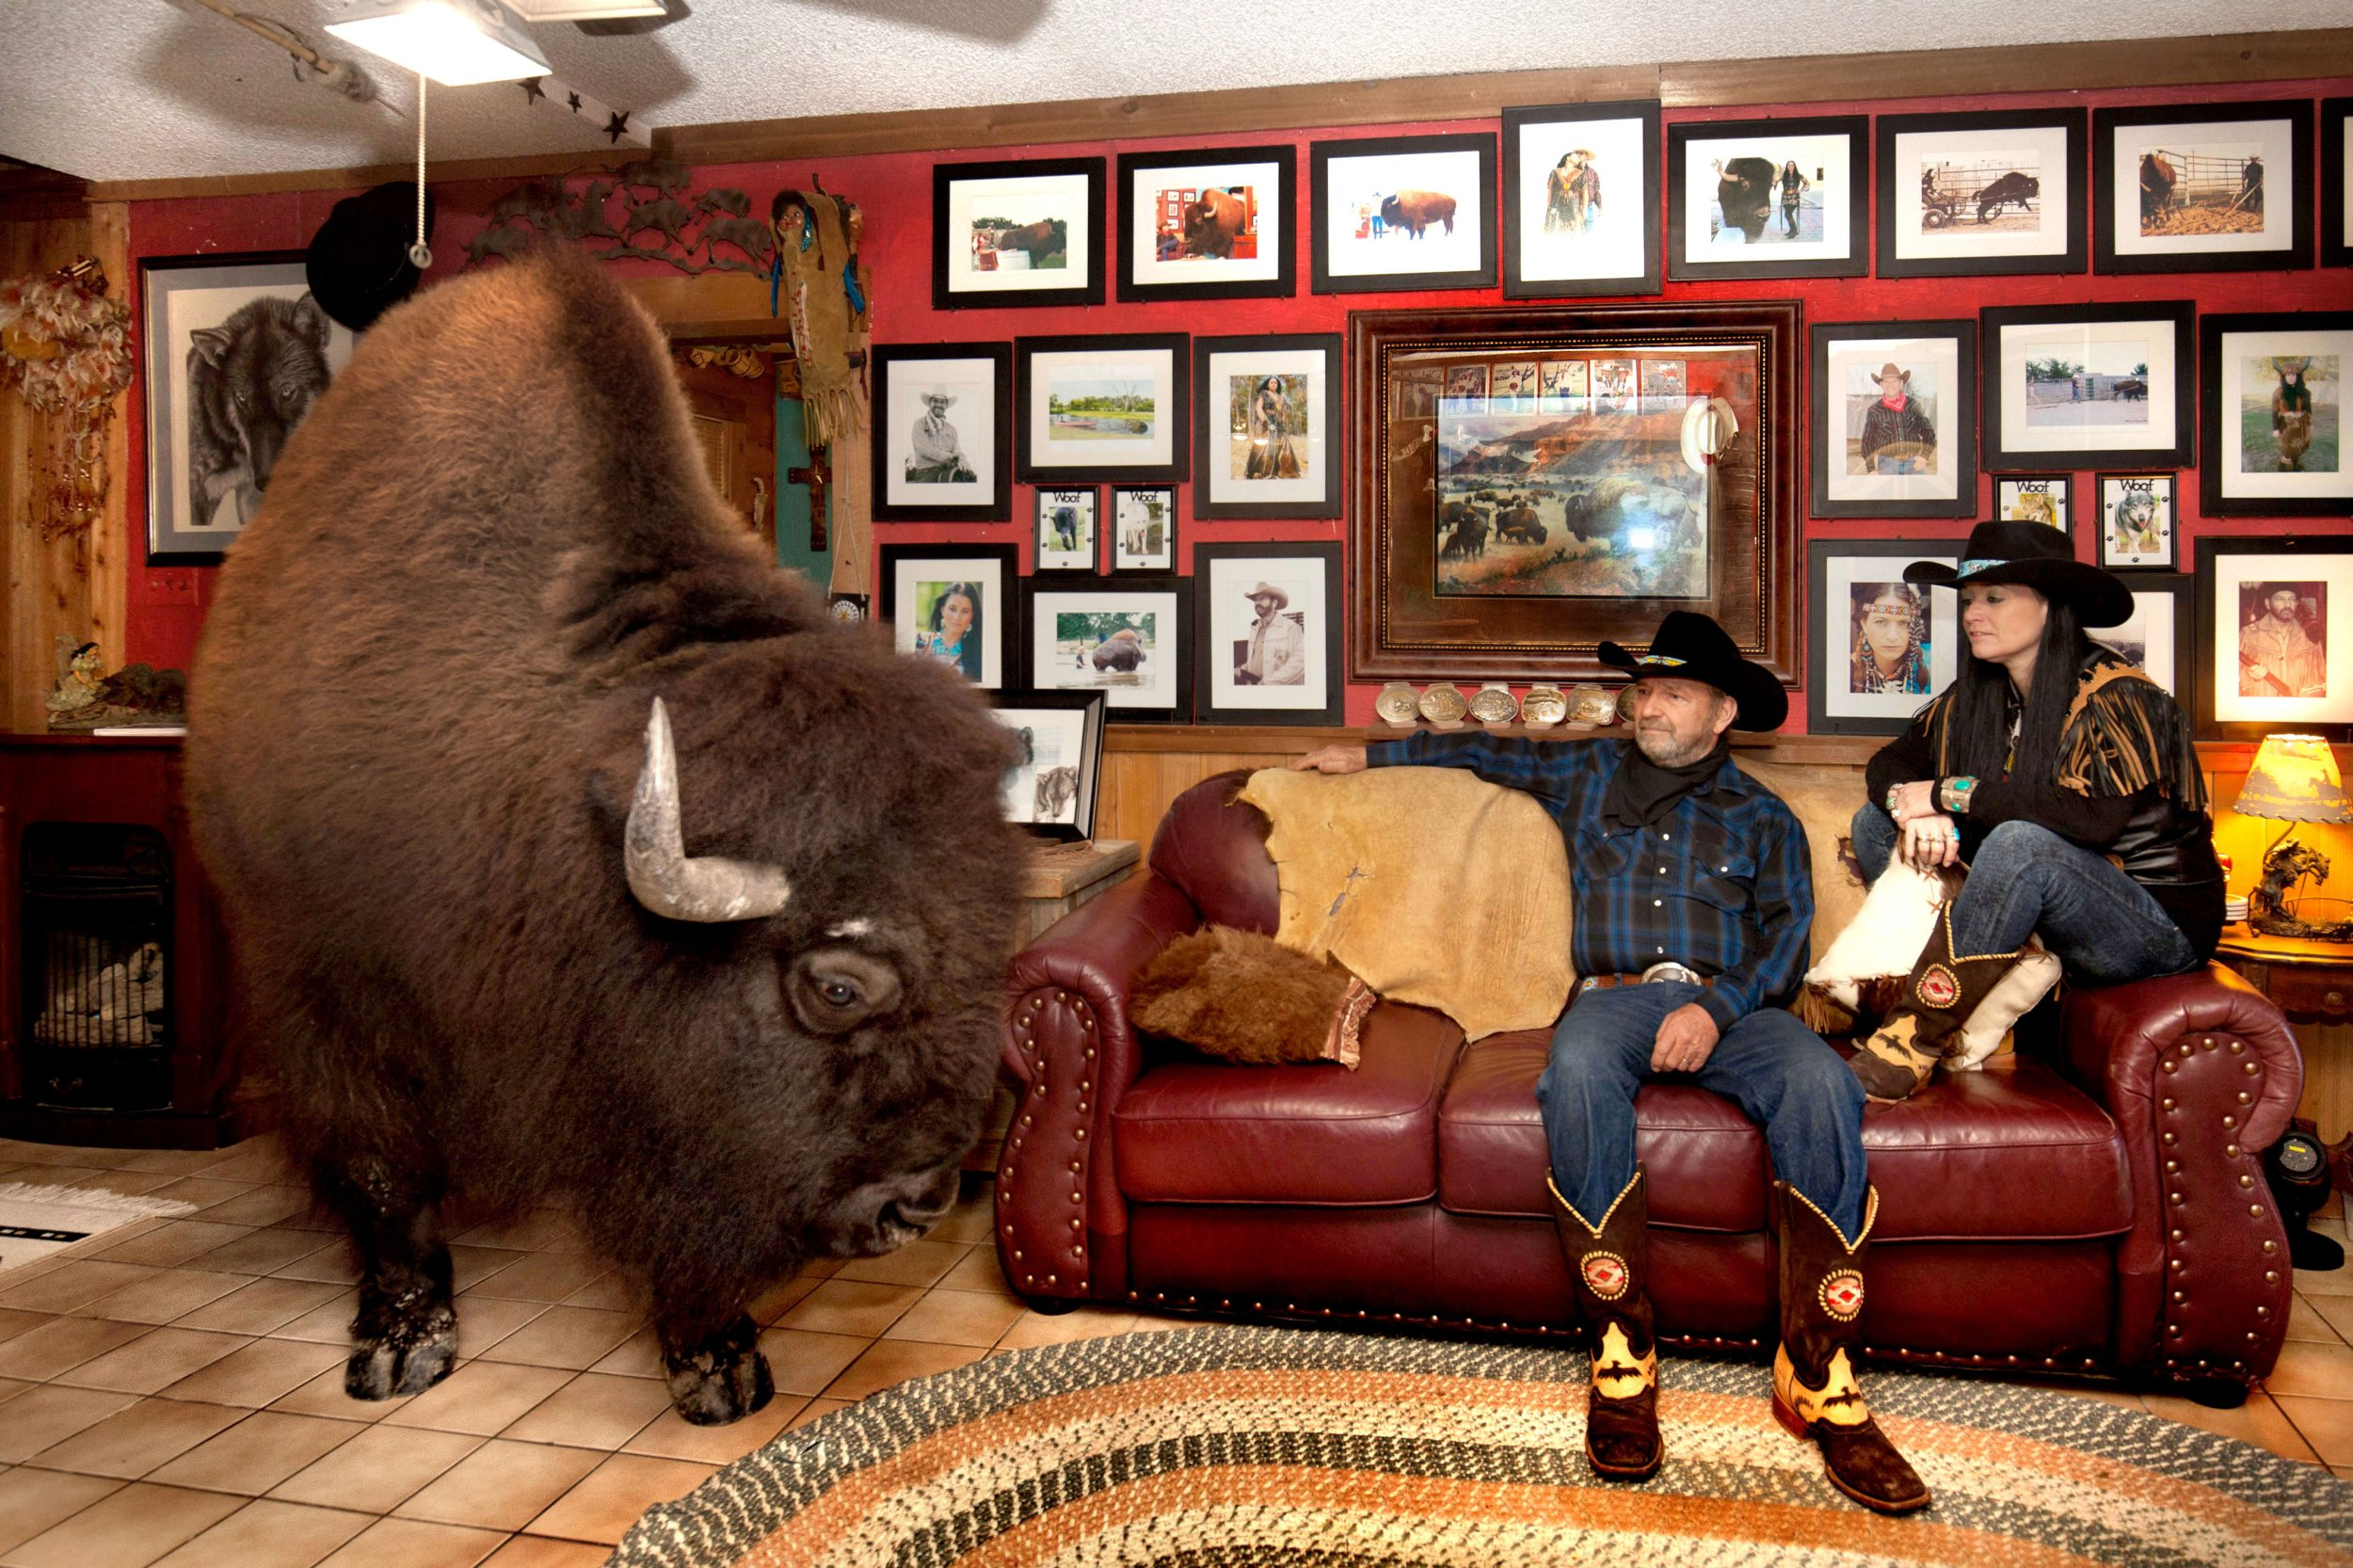 PIC BY Rasy Ran/ Caters News - (PICTURED: Ronnie, 60, and Sherron Bridges in their living room with Wild Thing) - This is the most pampered buffalo in the world and you will not believe these photos. Ronnie, 60, and Sherron Bridges, 44, from Texas, sold their herd of 52 buffalo in 2004 and replaced them with one calf they decided to treat rather differently. It was Sherrons idea to bring now 180 stone, Wild Thing into the home and giving him his own room to watch his favourite action movies. SEE CATERS COPY.